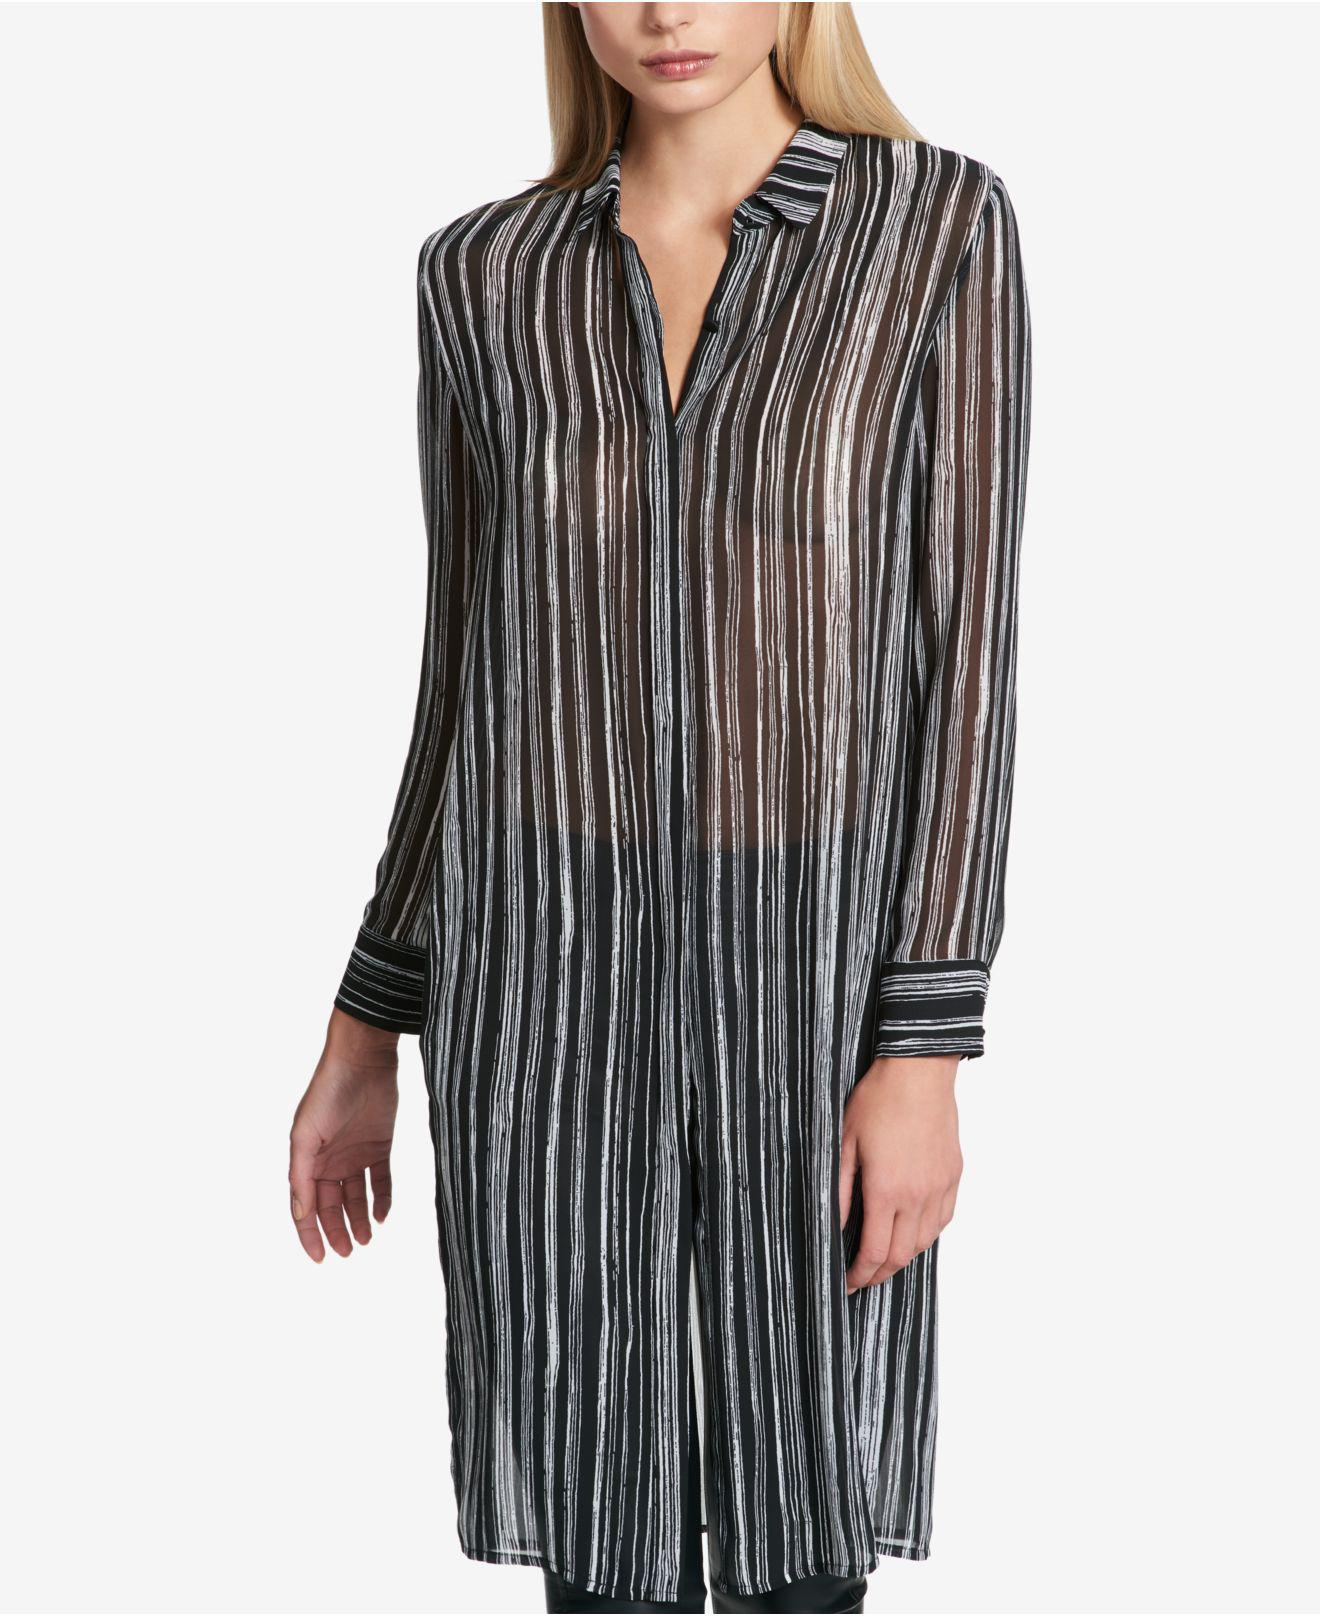 b647a0a29fa DKNY Striped Tunic Shirt in Black - Lyst